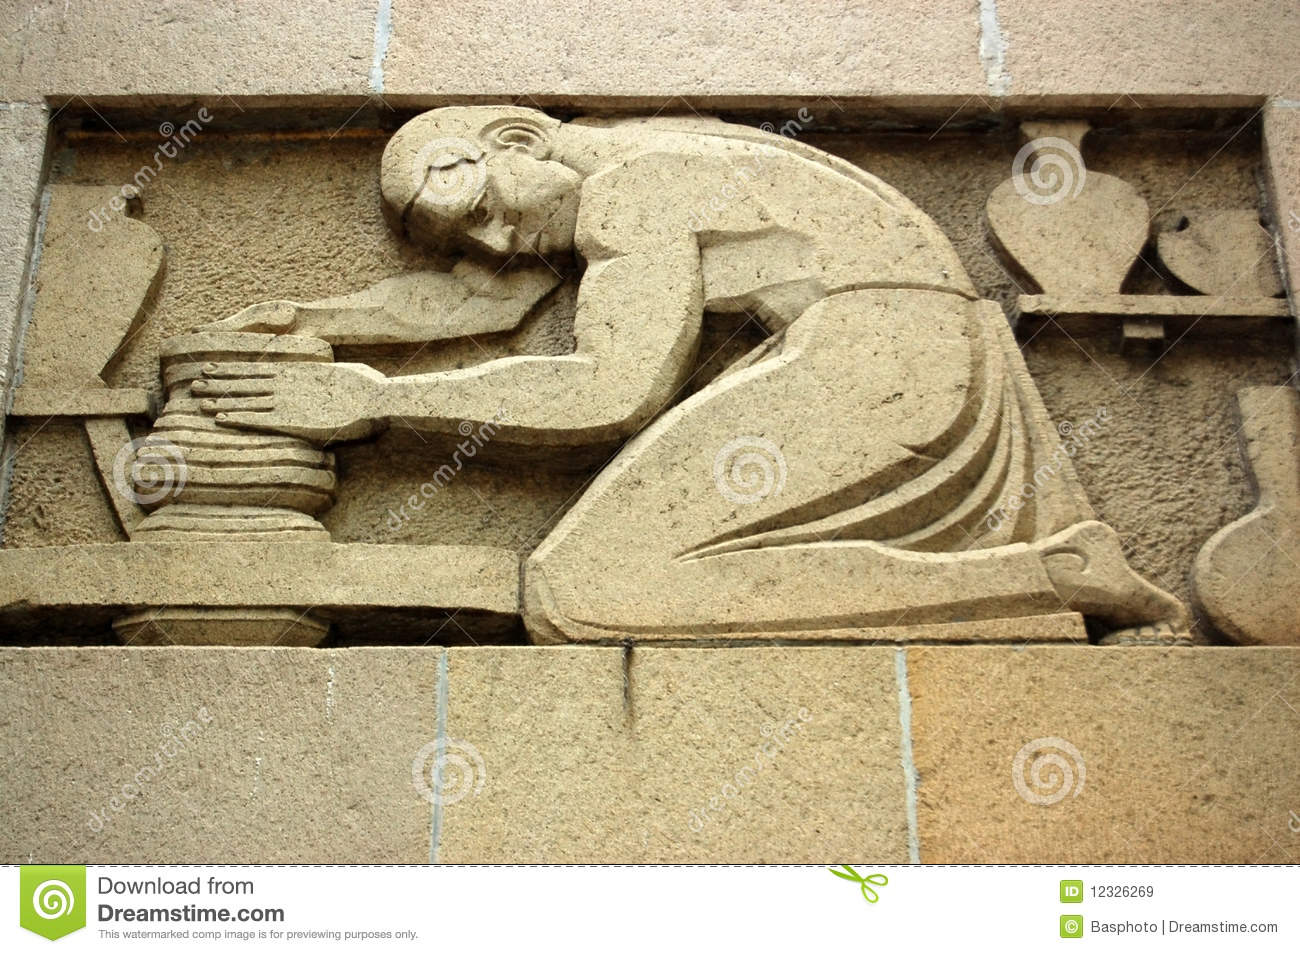 Art deco sculpture stock photo. Image of sculpted, laborers - 4255464